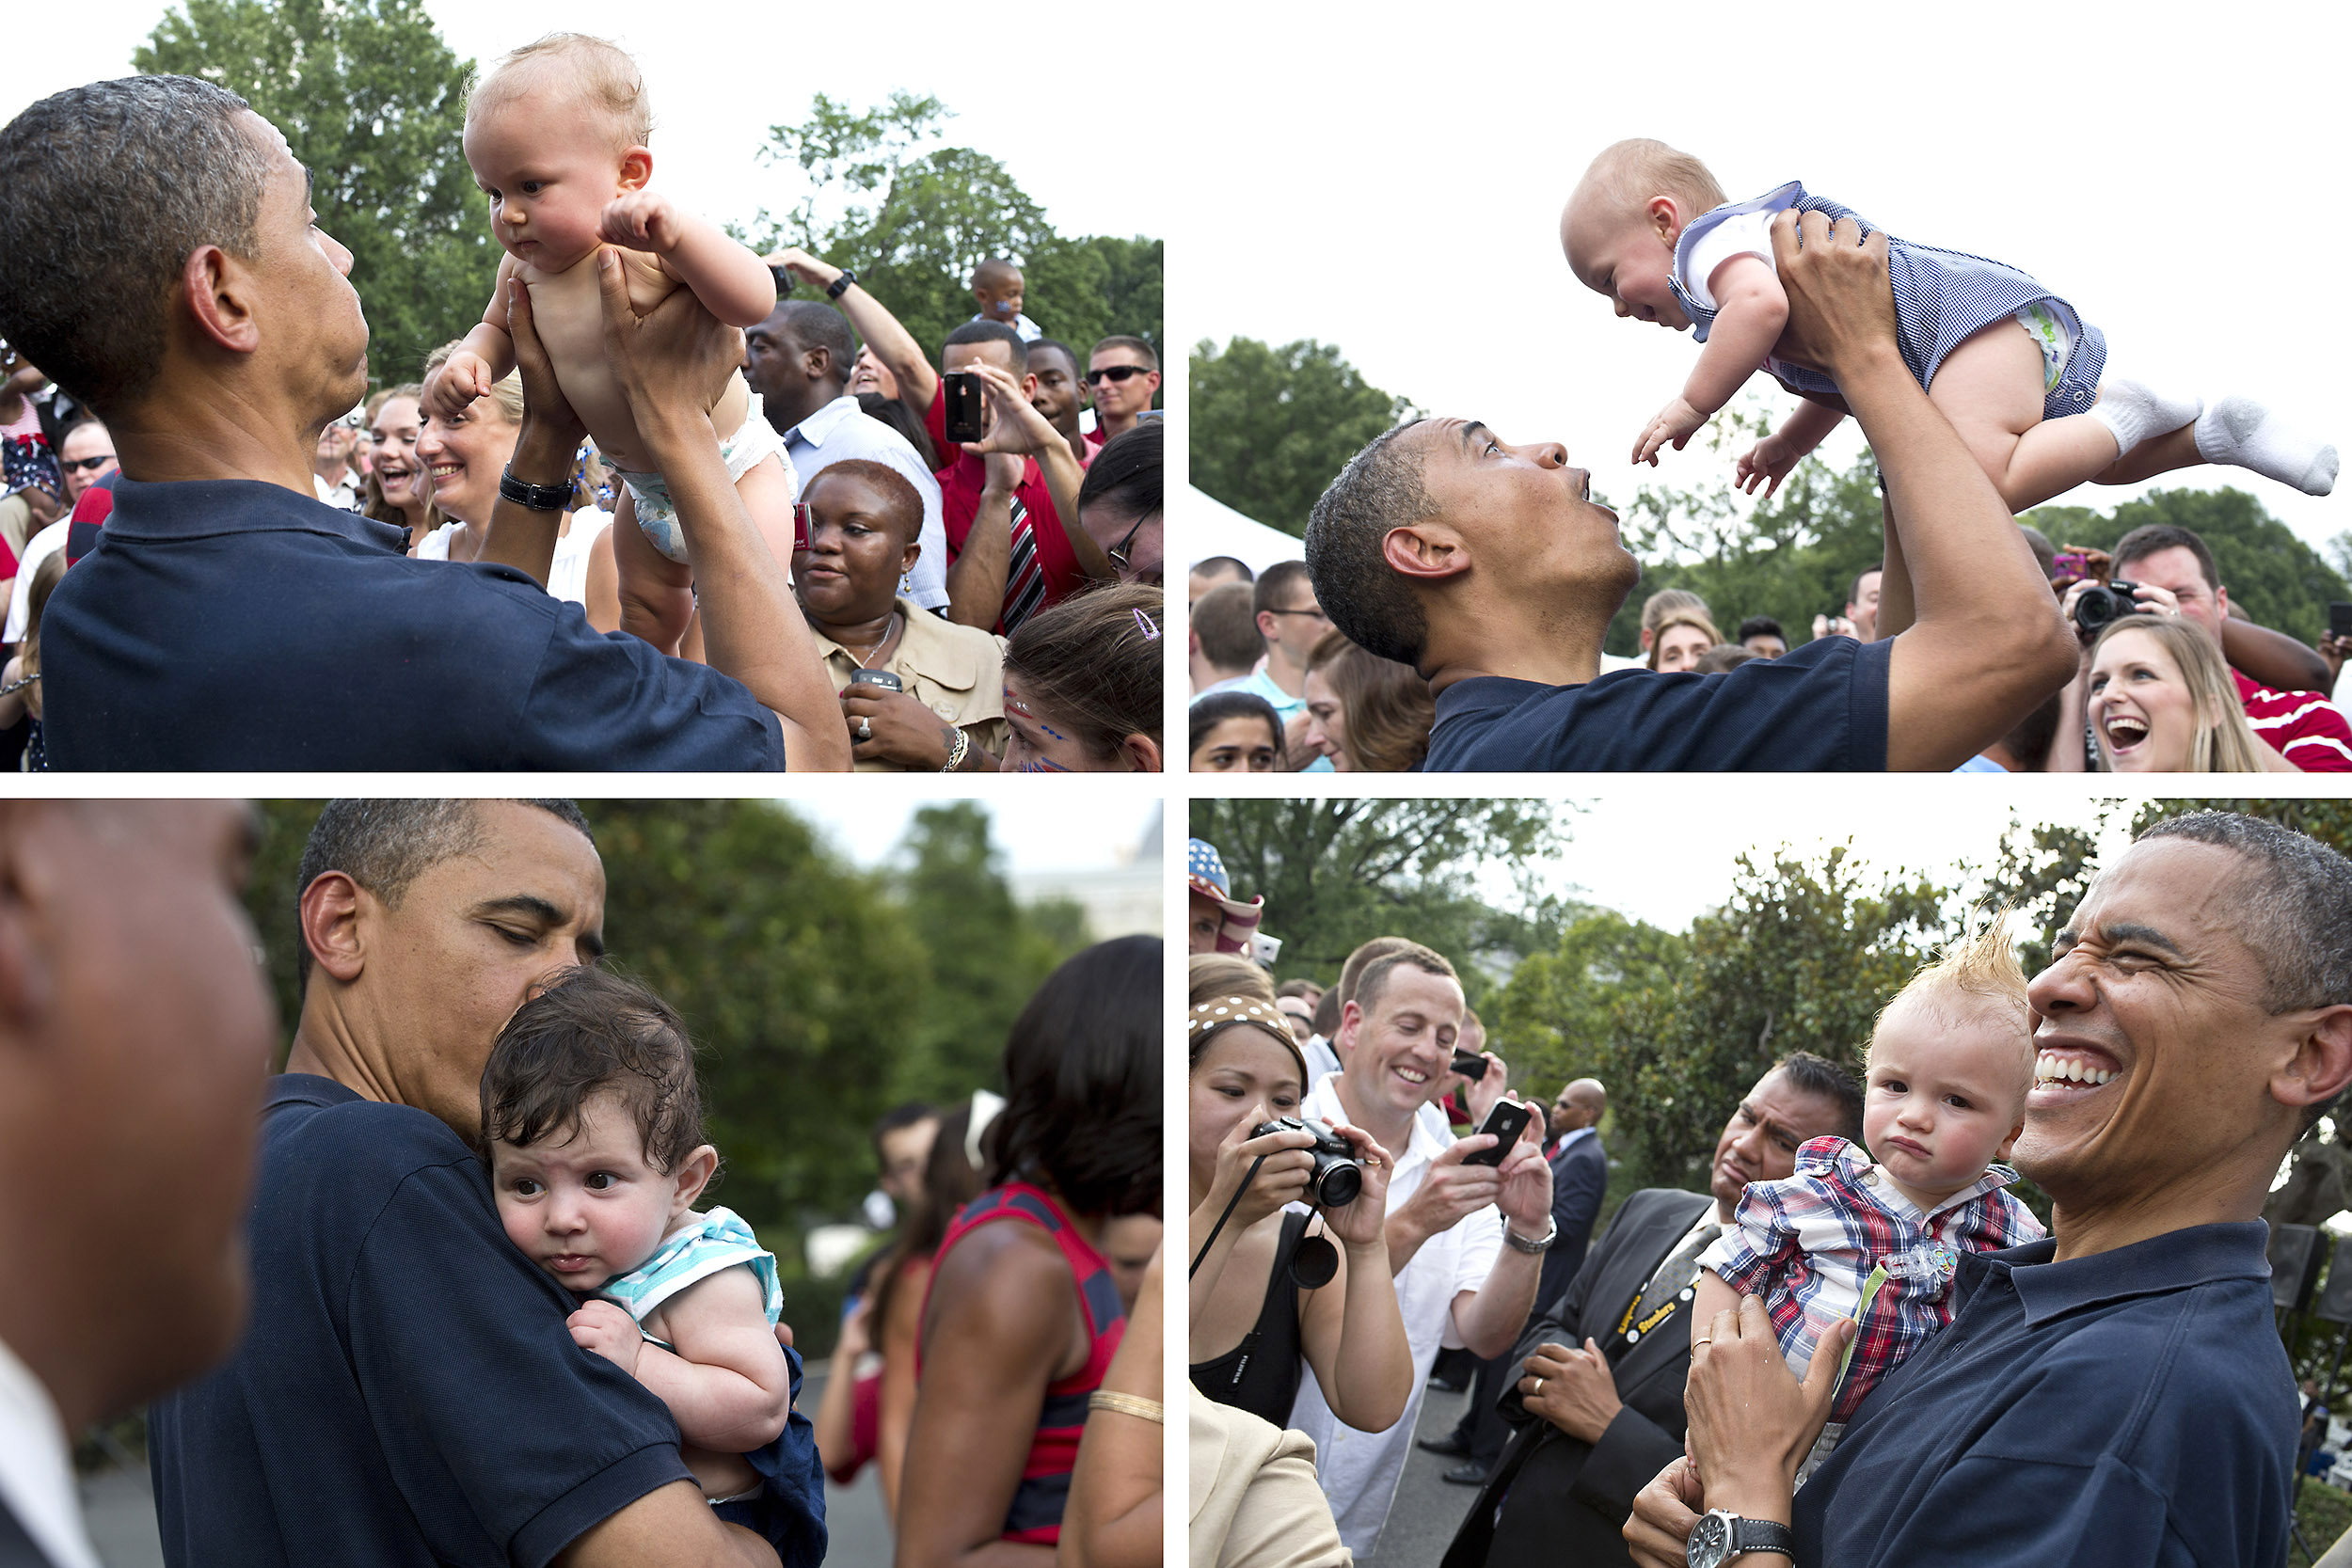 """July 4, 2012                               Pete Souza: """"There seemed to be more babies than usual amongst the military families so I made a quad of four different babies that the President played with for awhile.""""                               Composite of photos of President Barack Obama holding a baby as he and First Lady Michelle Obama greet military personnel and their families during an Independence Day celebration on the South Lawn of the White House, July 4, 2012."""